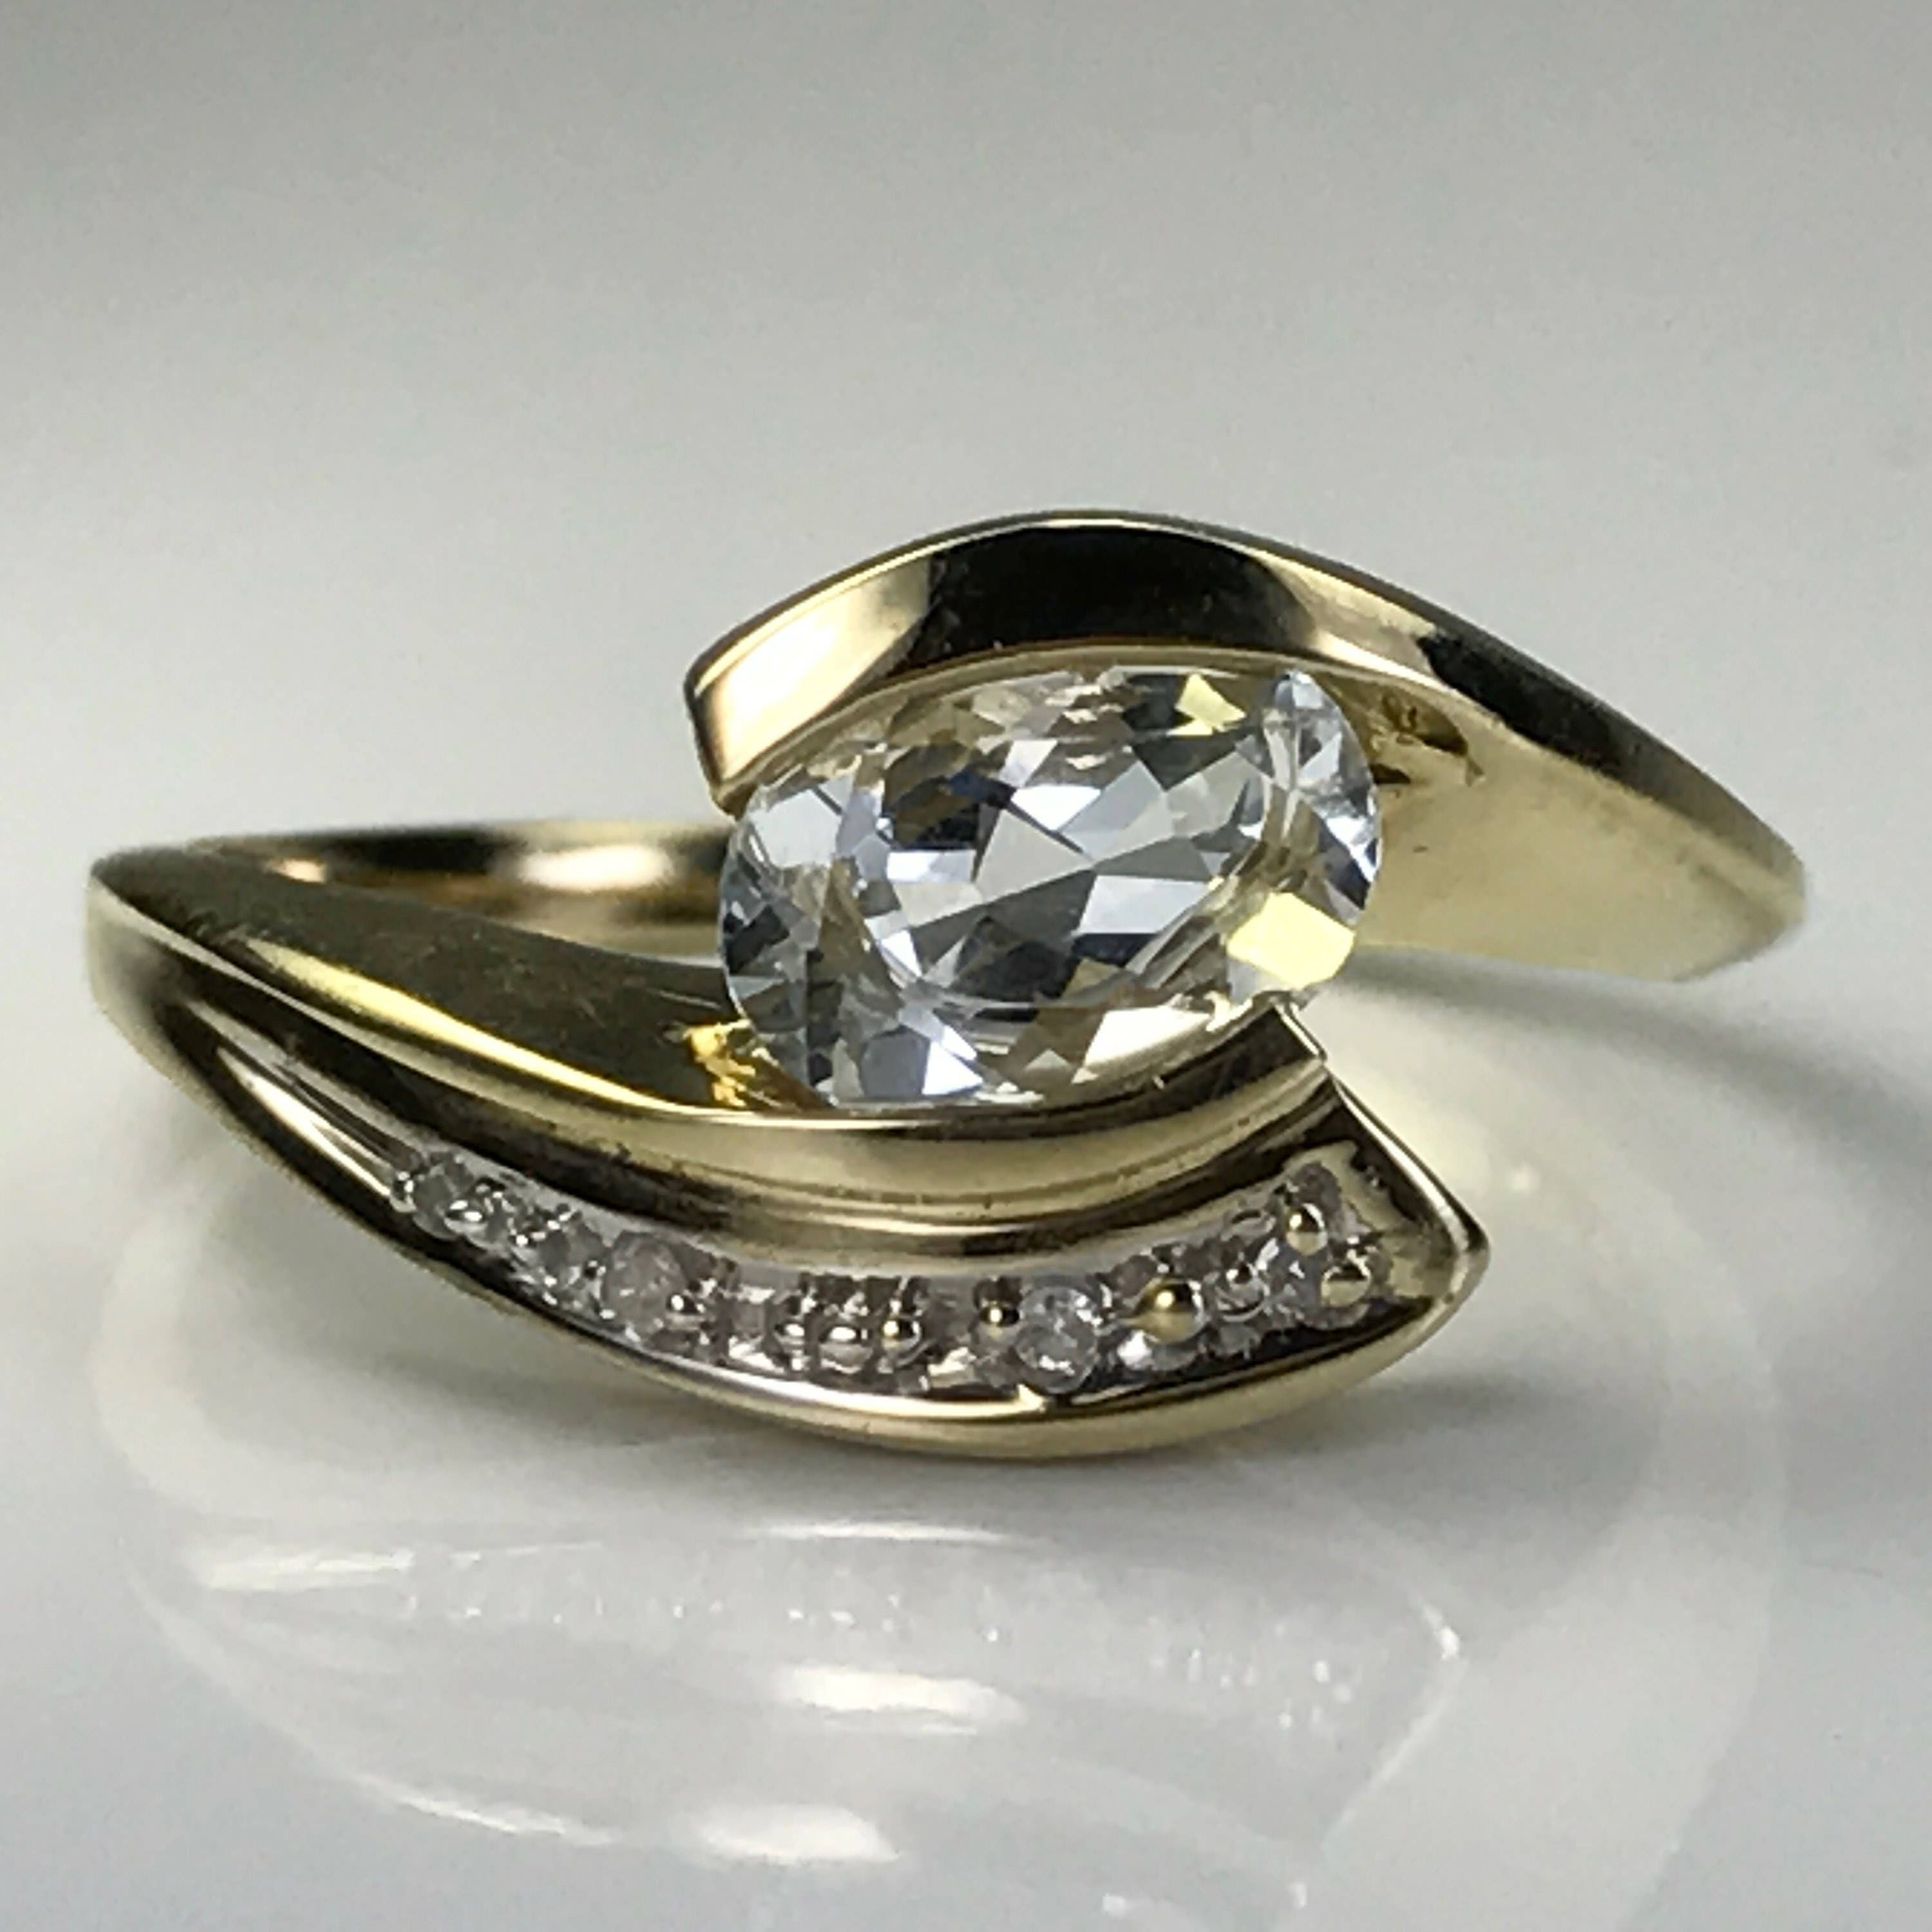 rings diamond previous carat modernist ring radiant arnold engagement next product jewelers modern custom